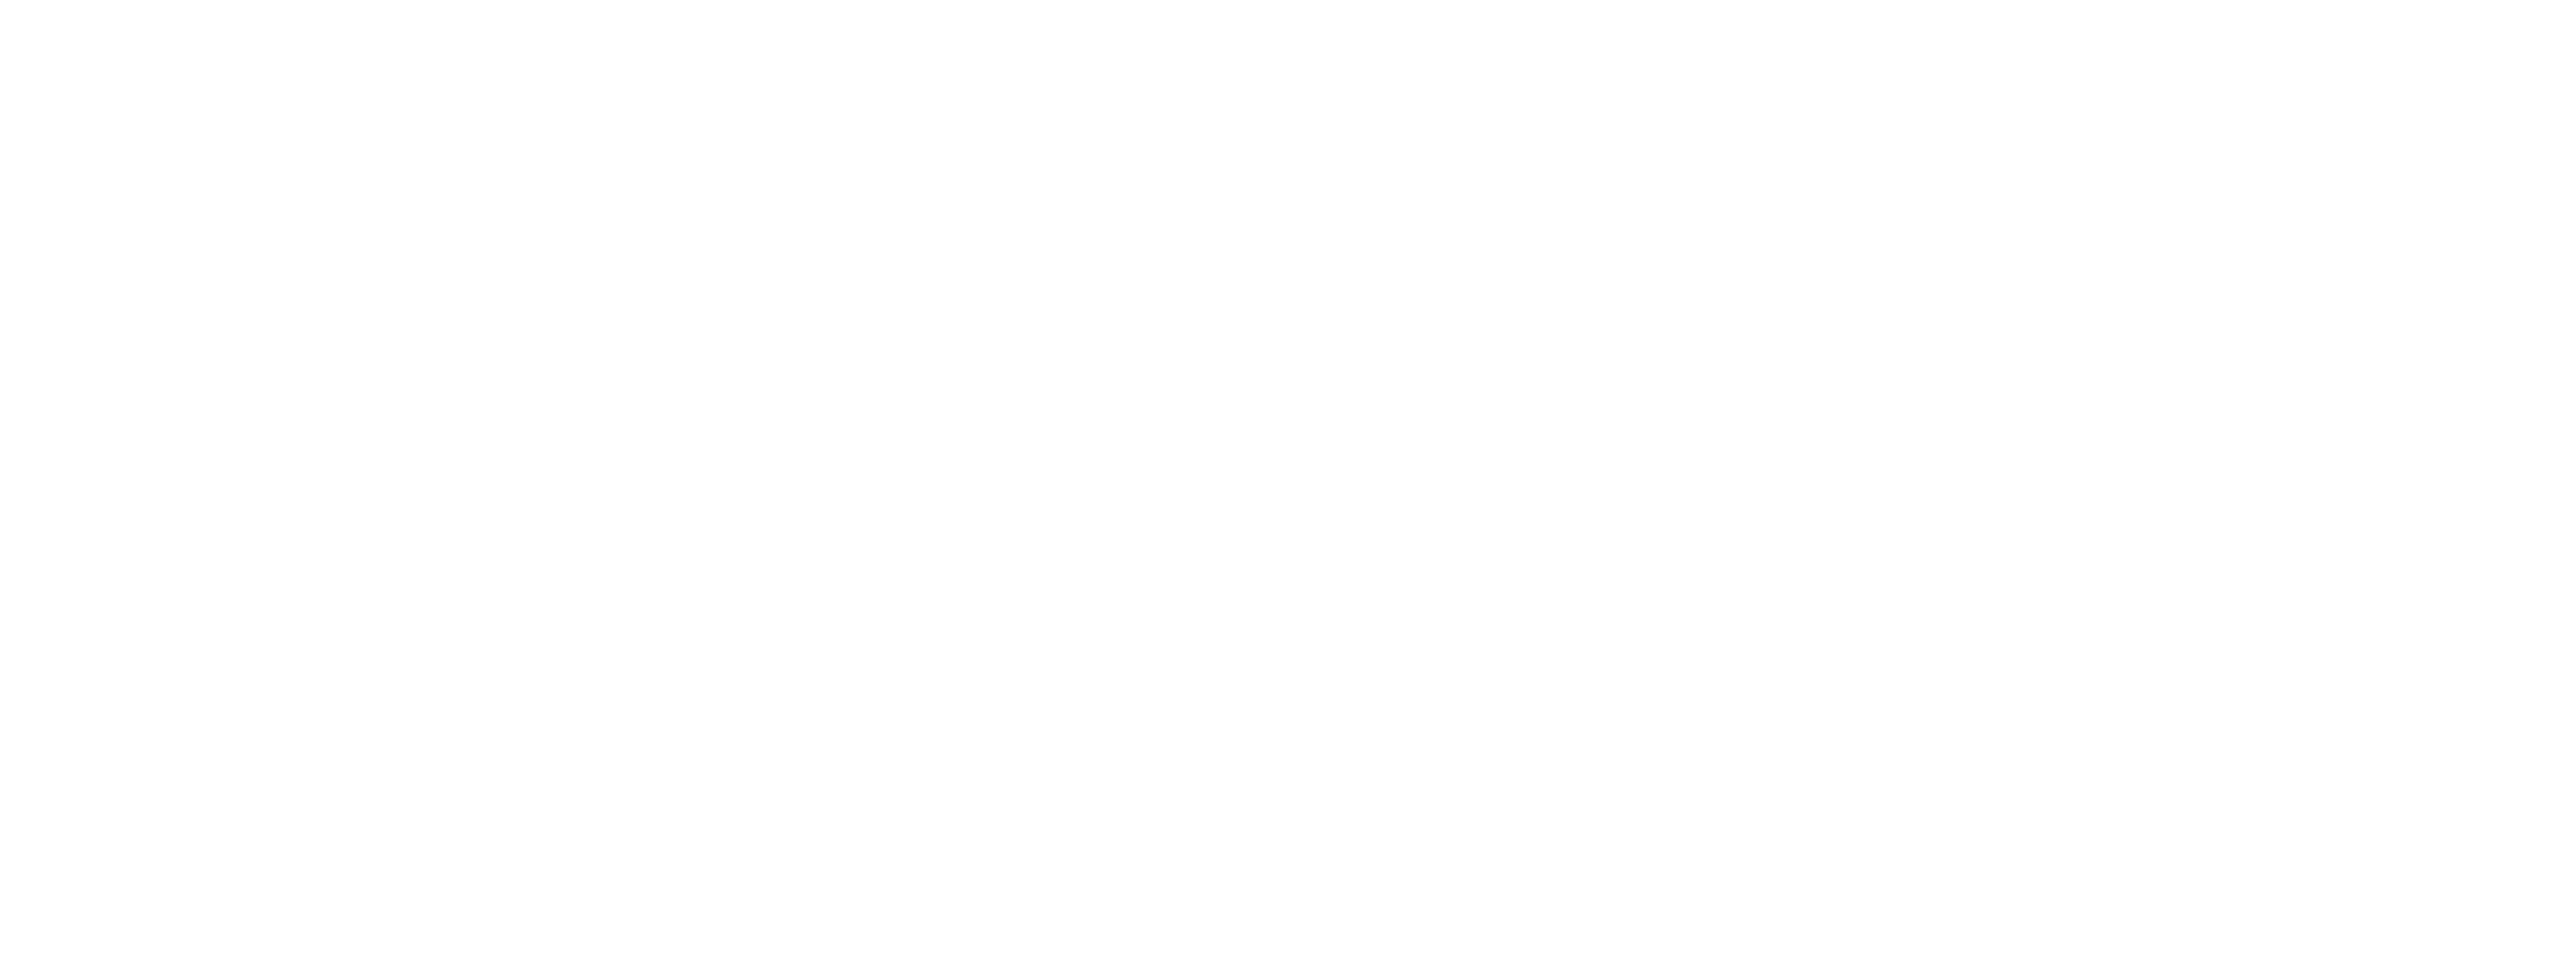 Richard Anderson Photography